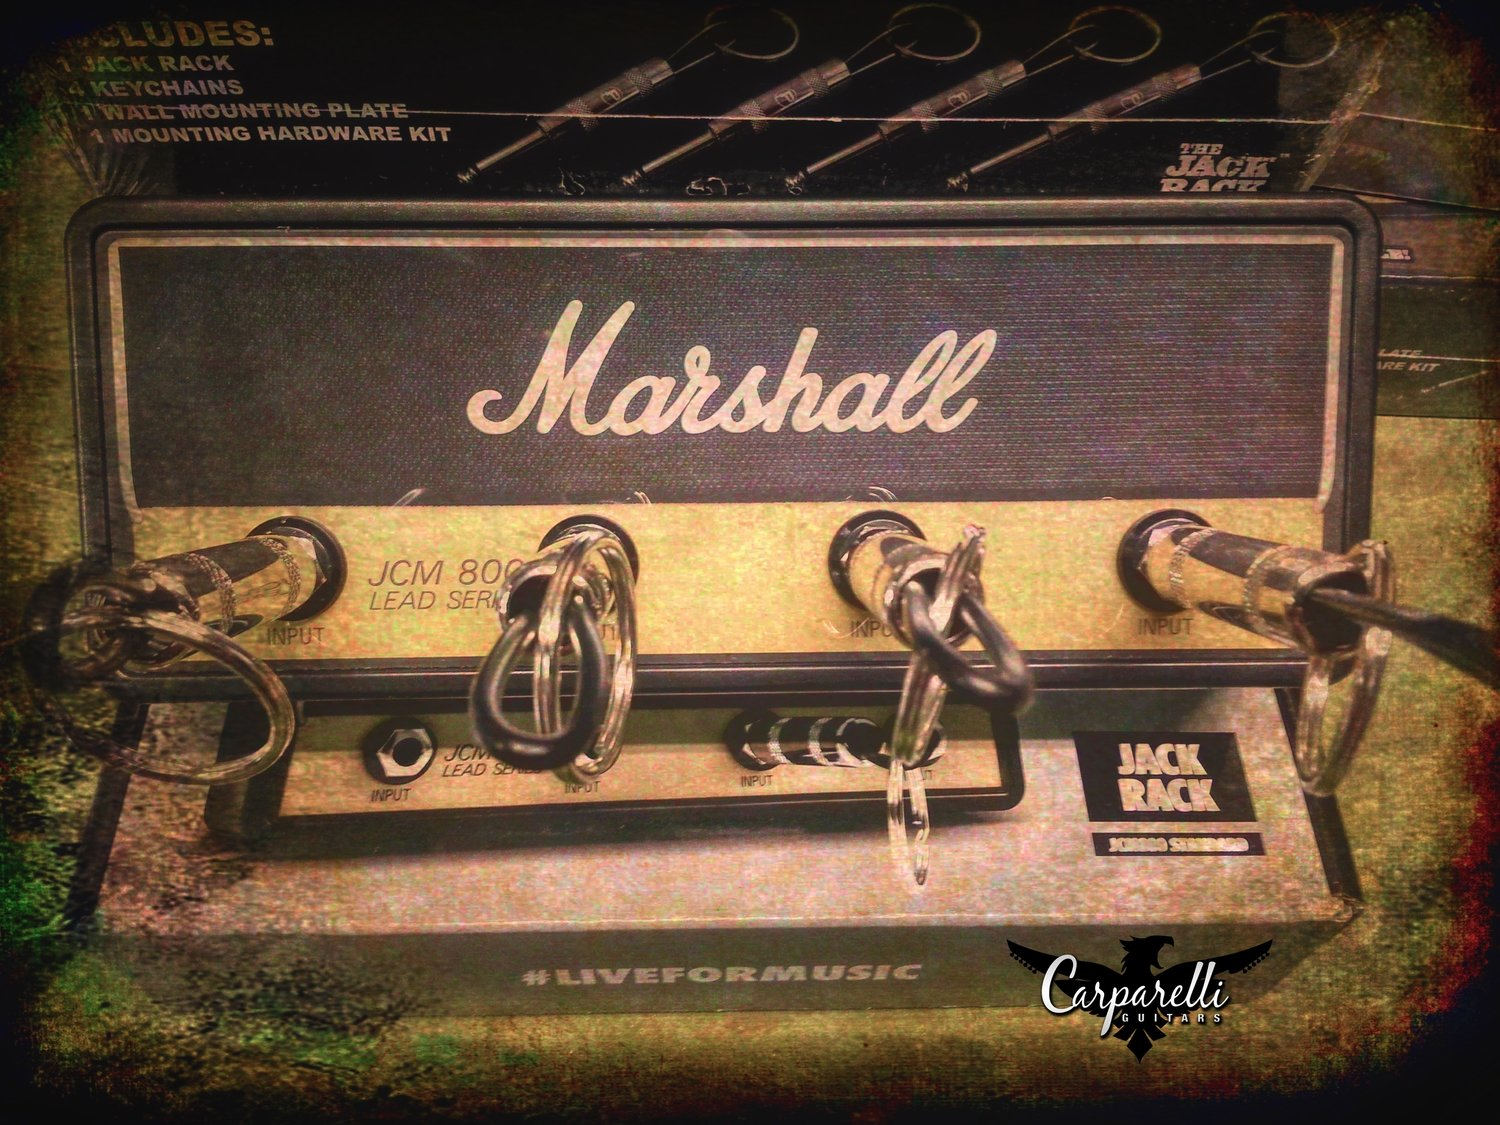 Official licensed Marshall Standard JCM800 Amplification